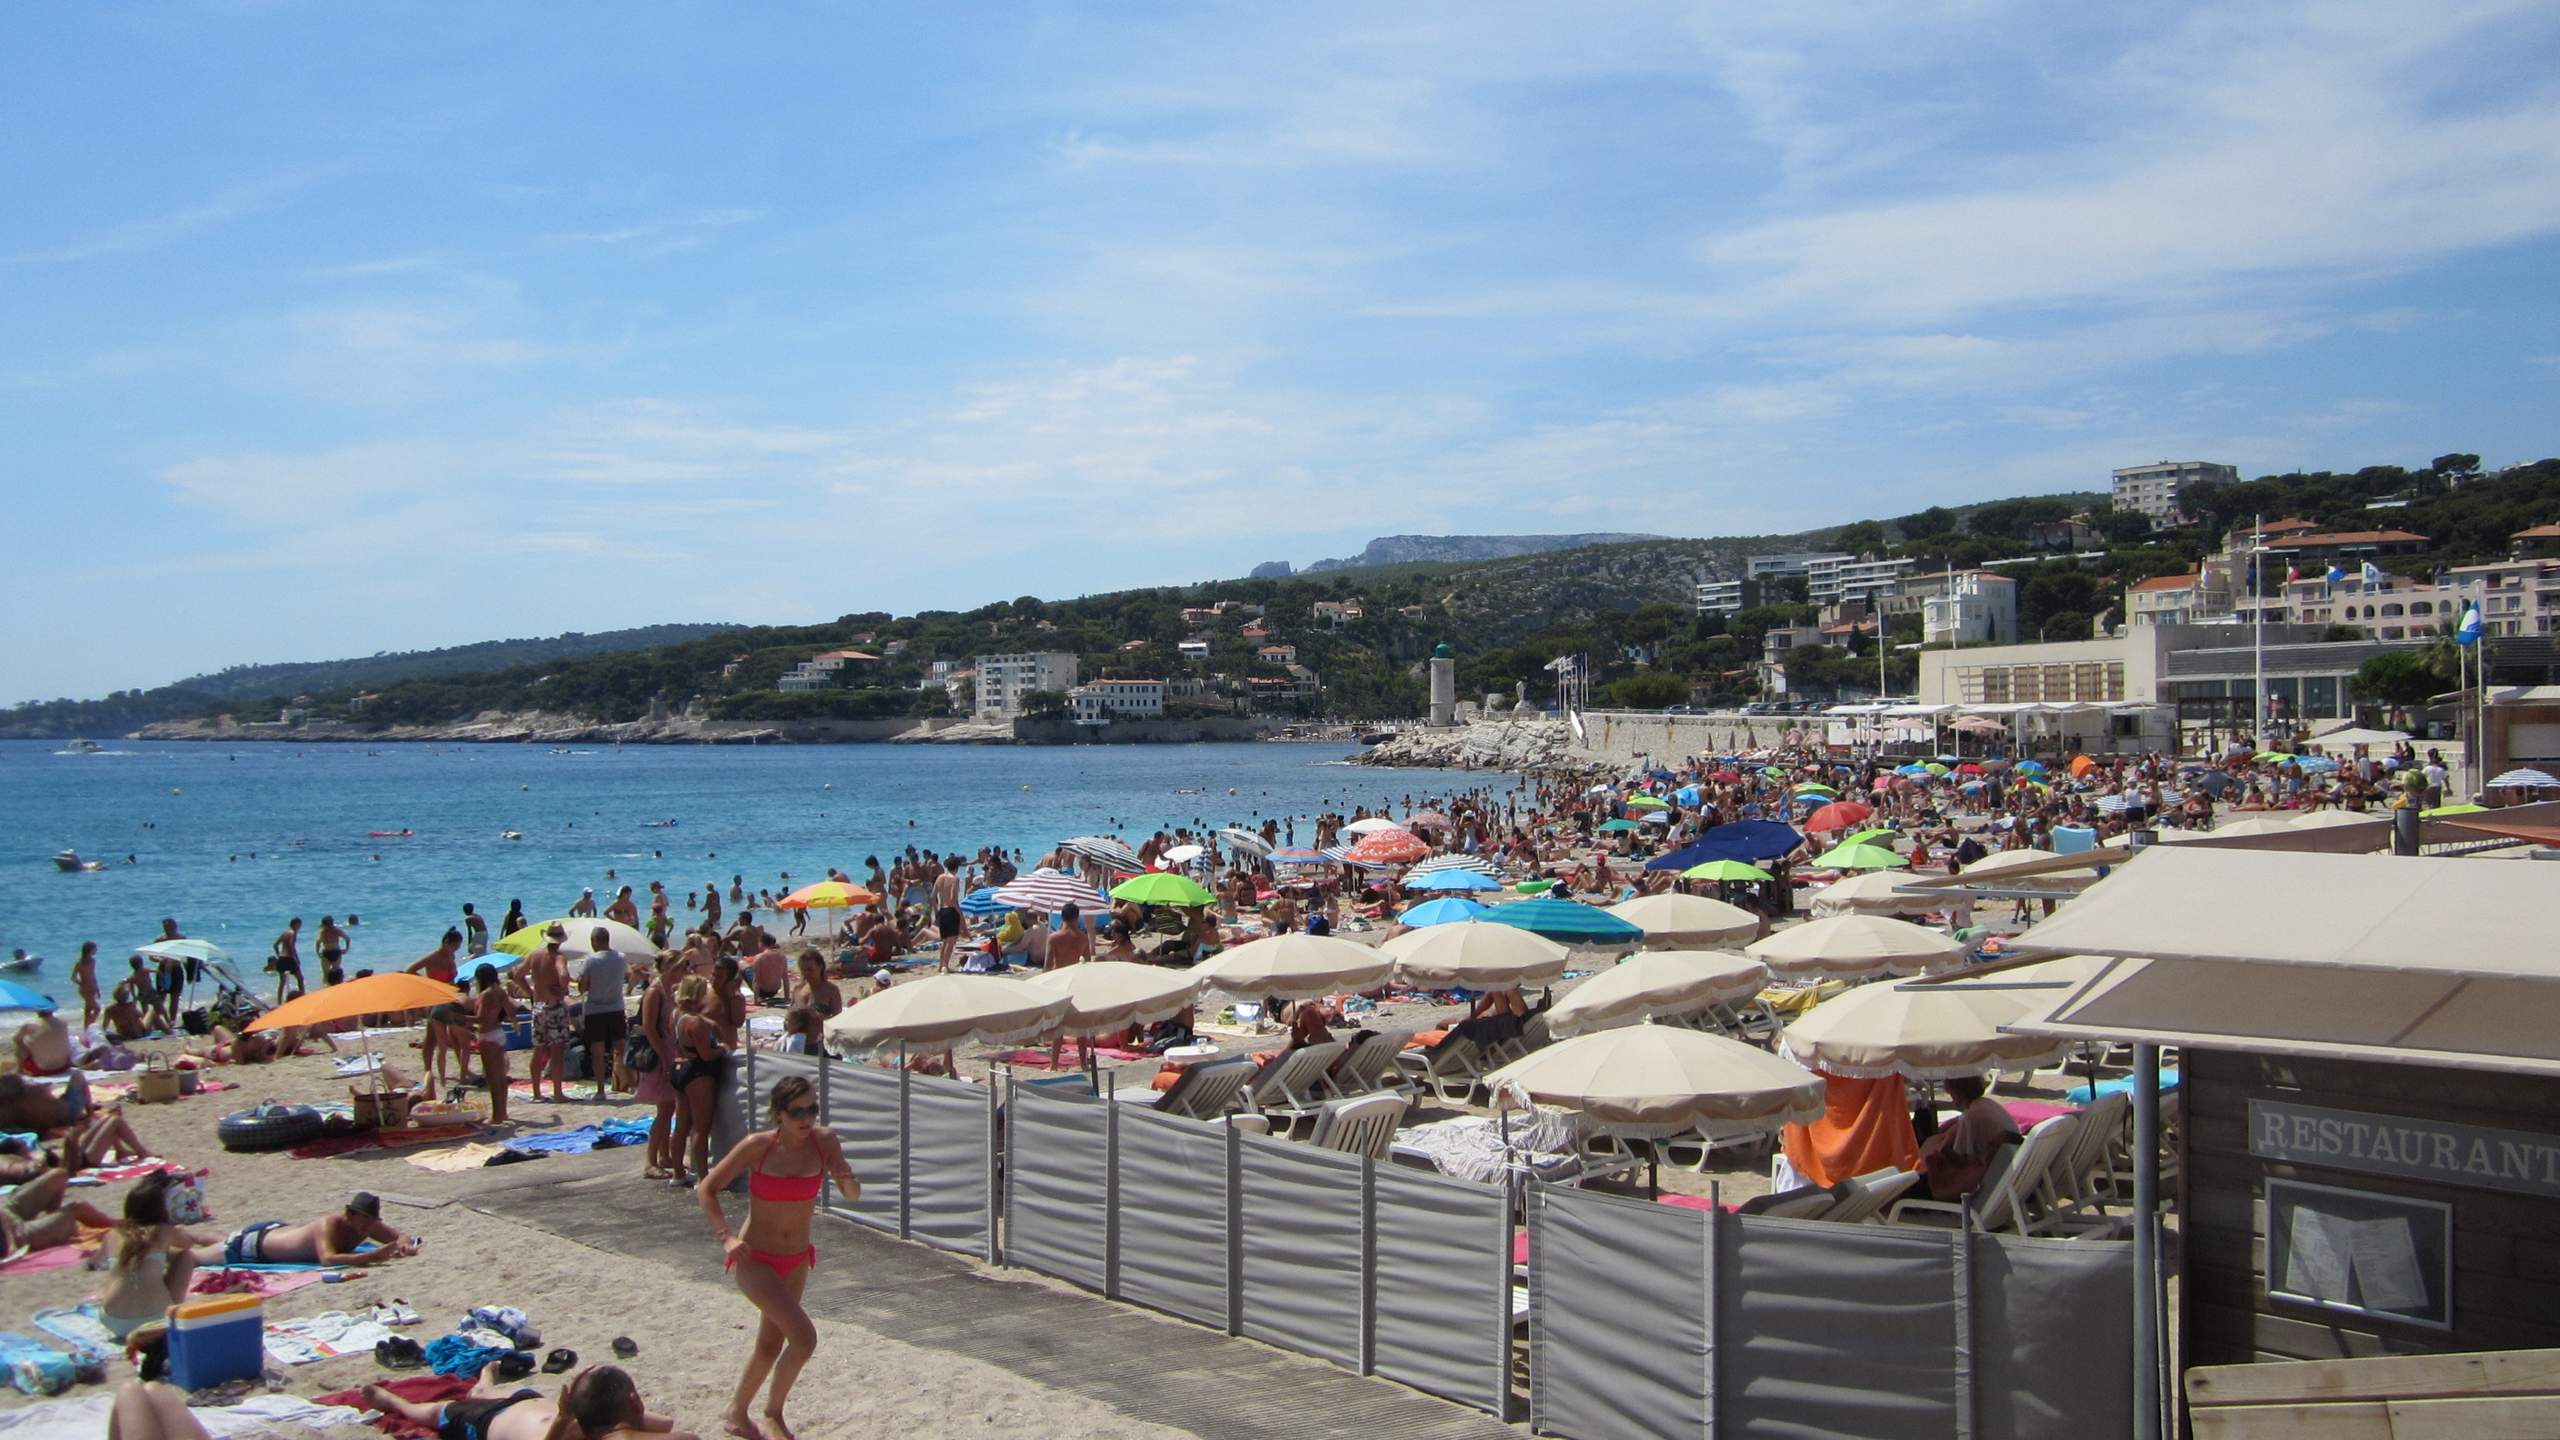 The beach in Cassis was teeming with people.